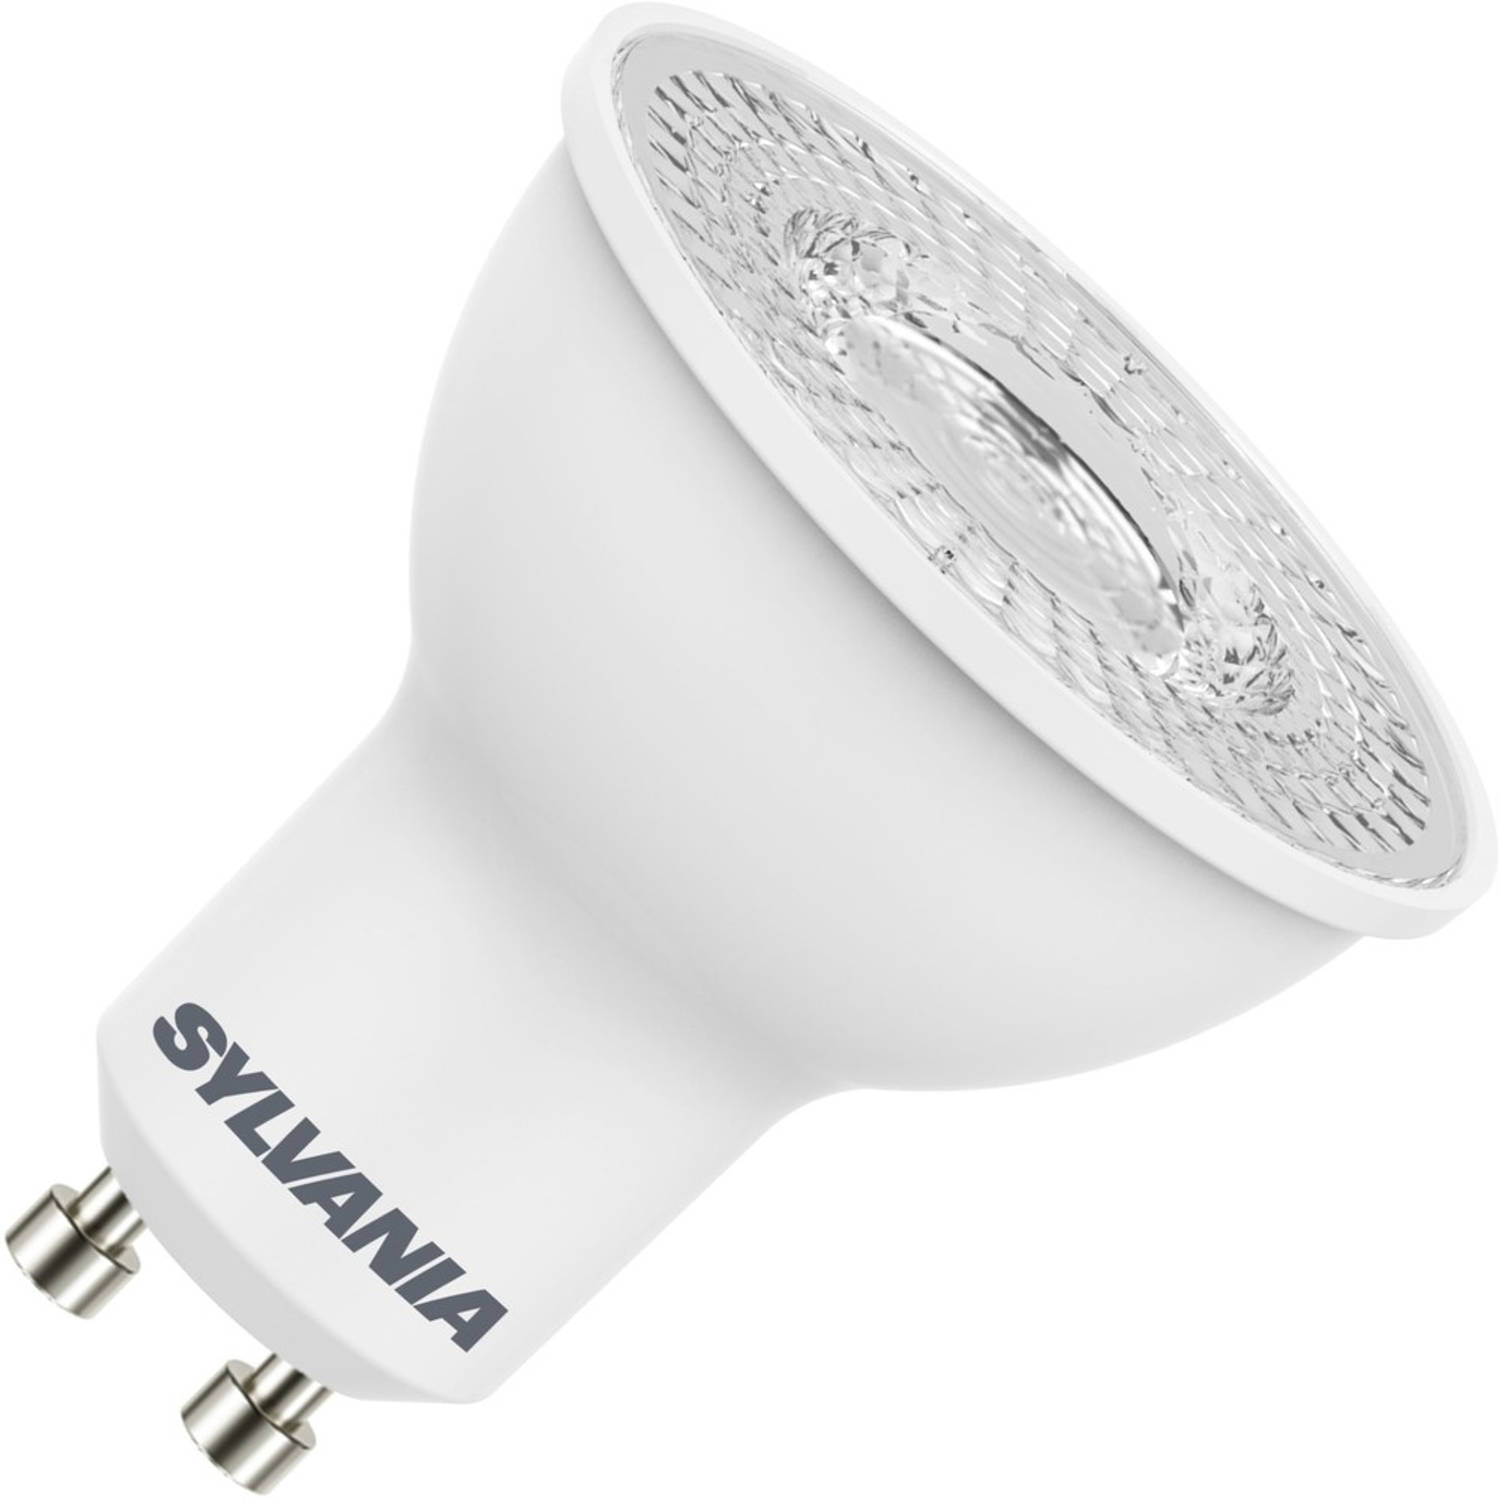 Sylvania led reflector 230v 4,5w (vervangt 47w) gu10 50mm 4000 koel-wit 110⁰